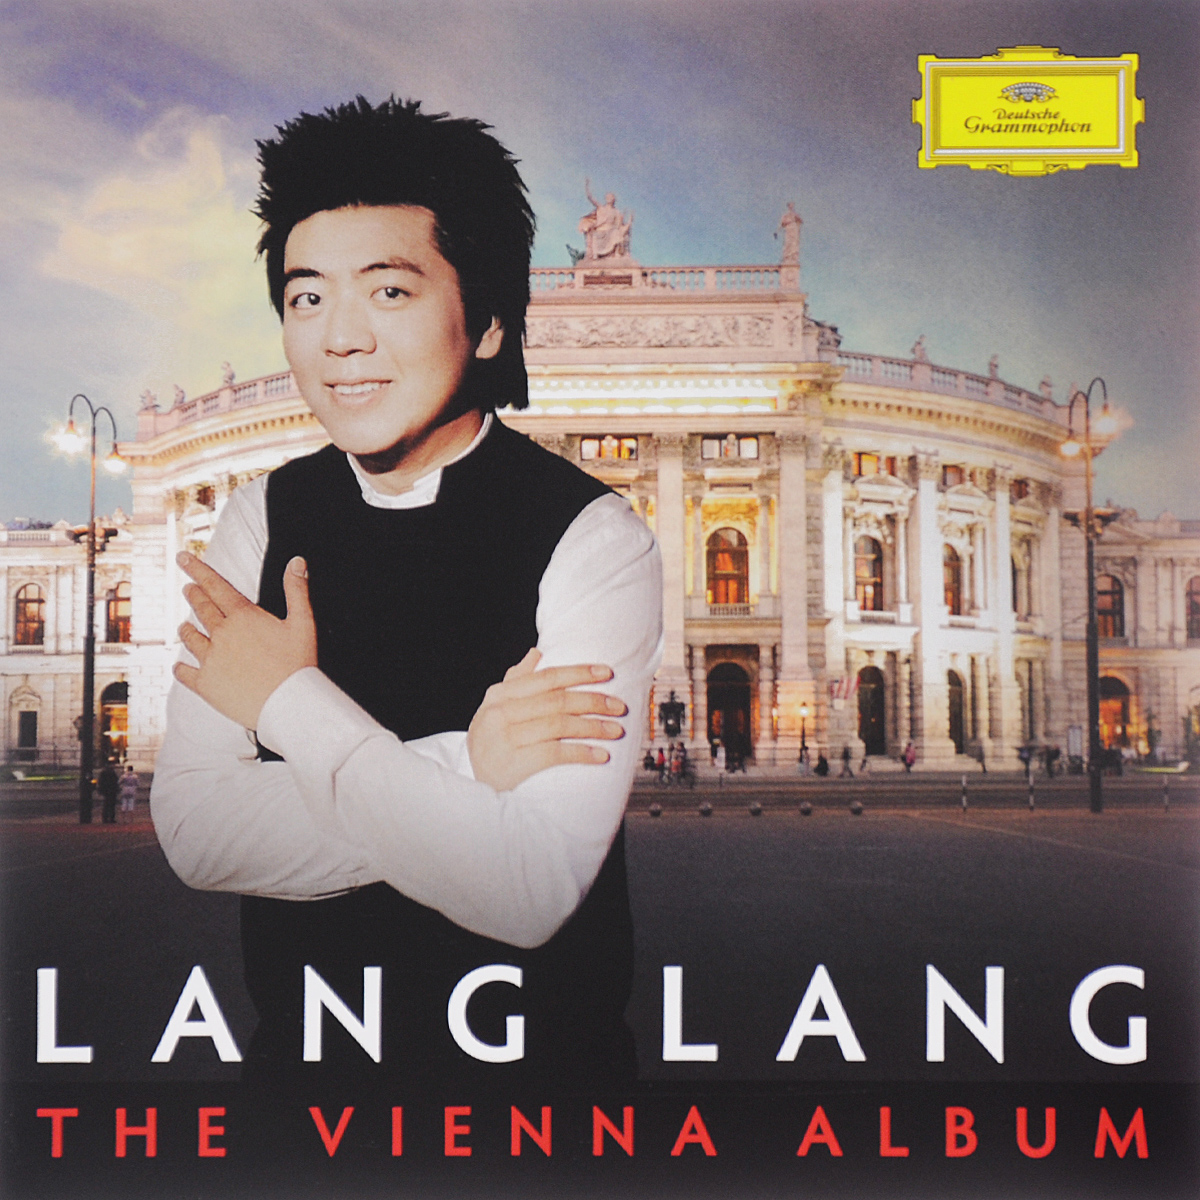 Ланг Ланг,Кристоф Эшенбах,Orchestre De Paris Lang Lang. The Vienna Album (2 CD) hama vienna 17 3 black